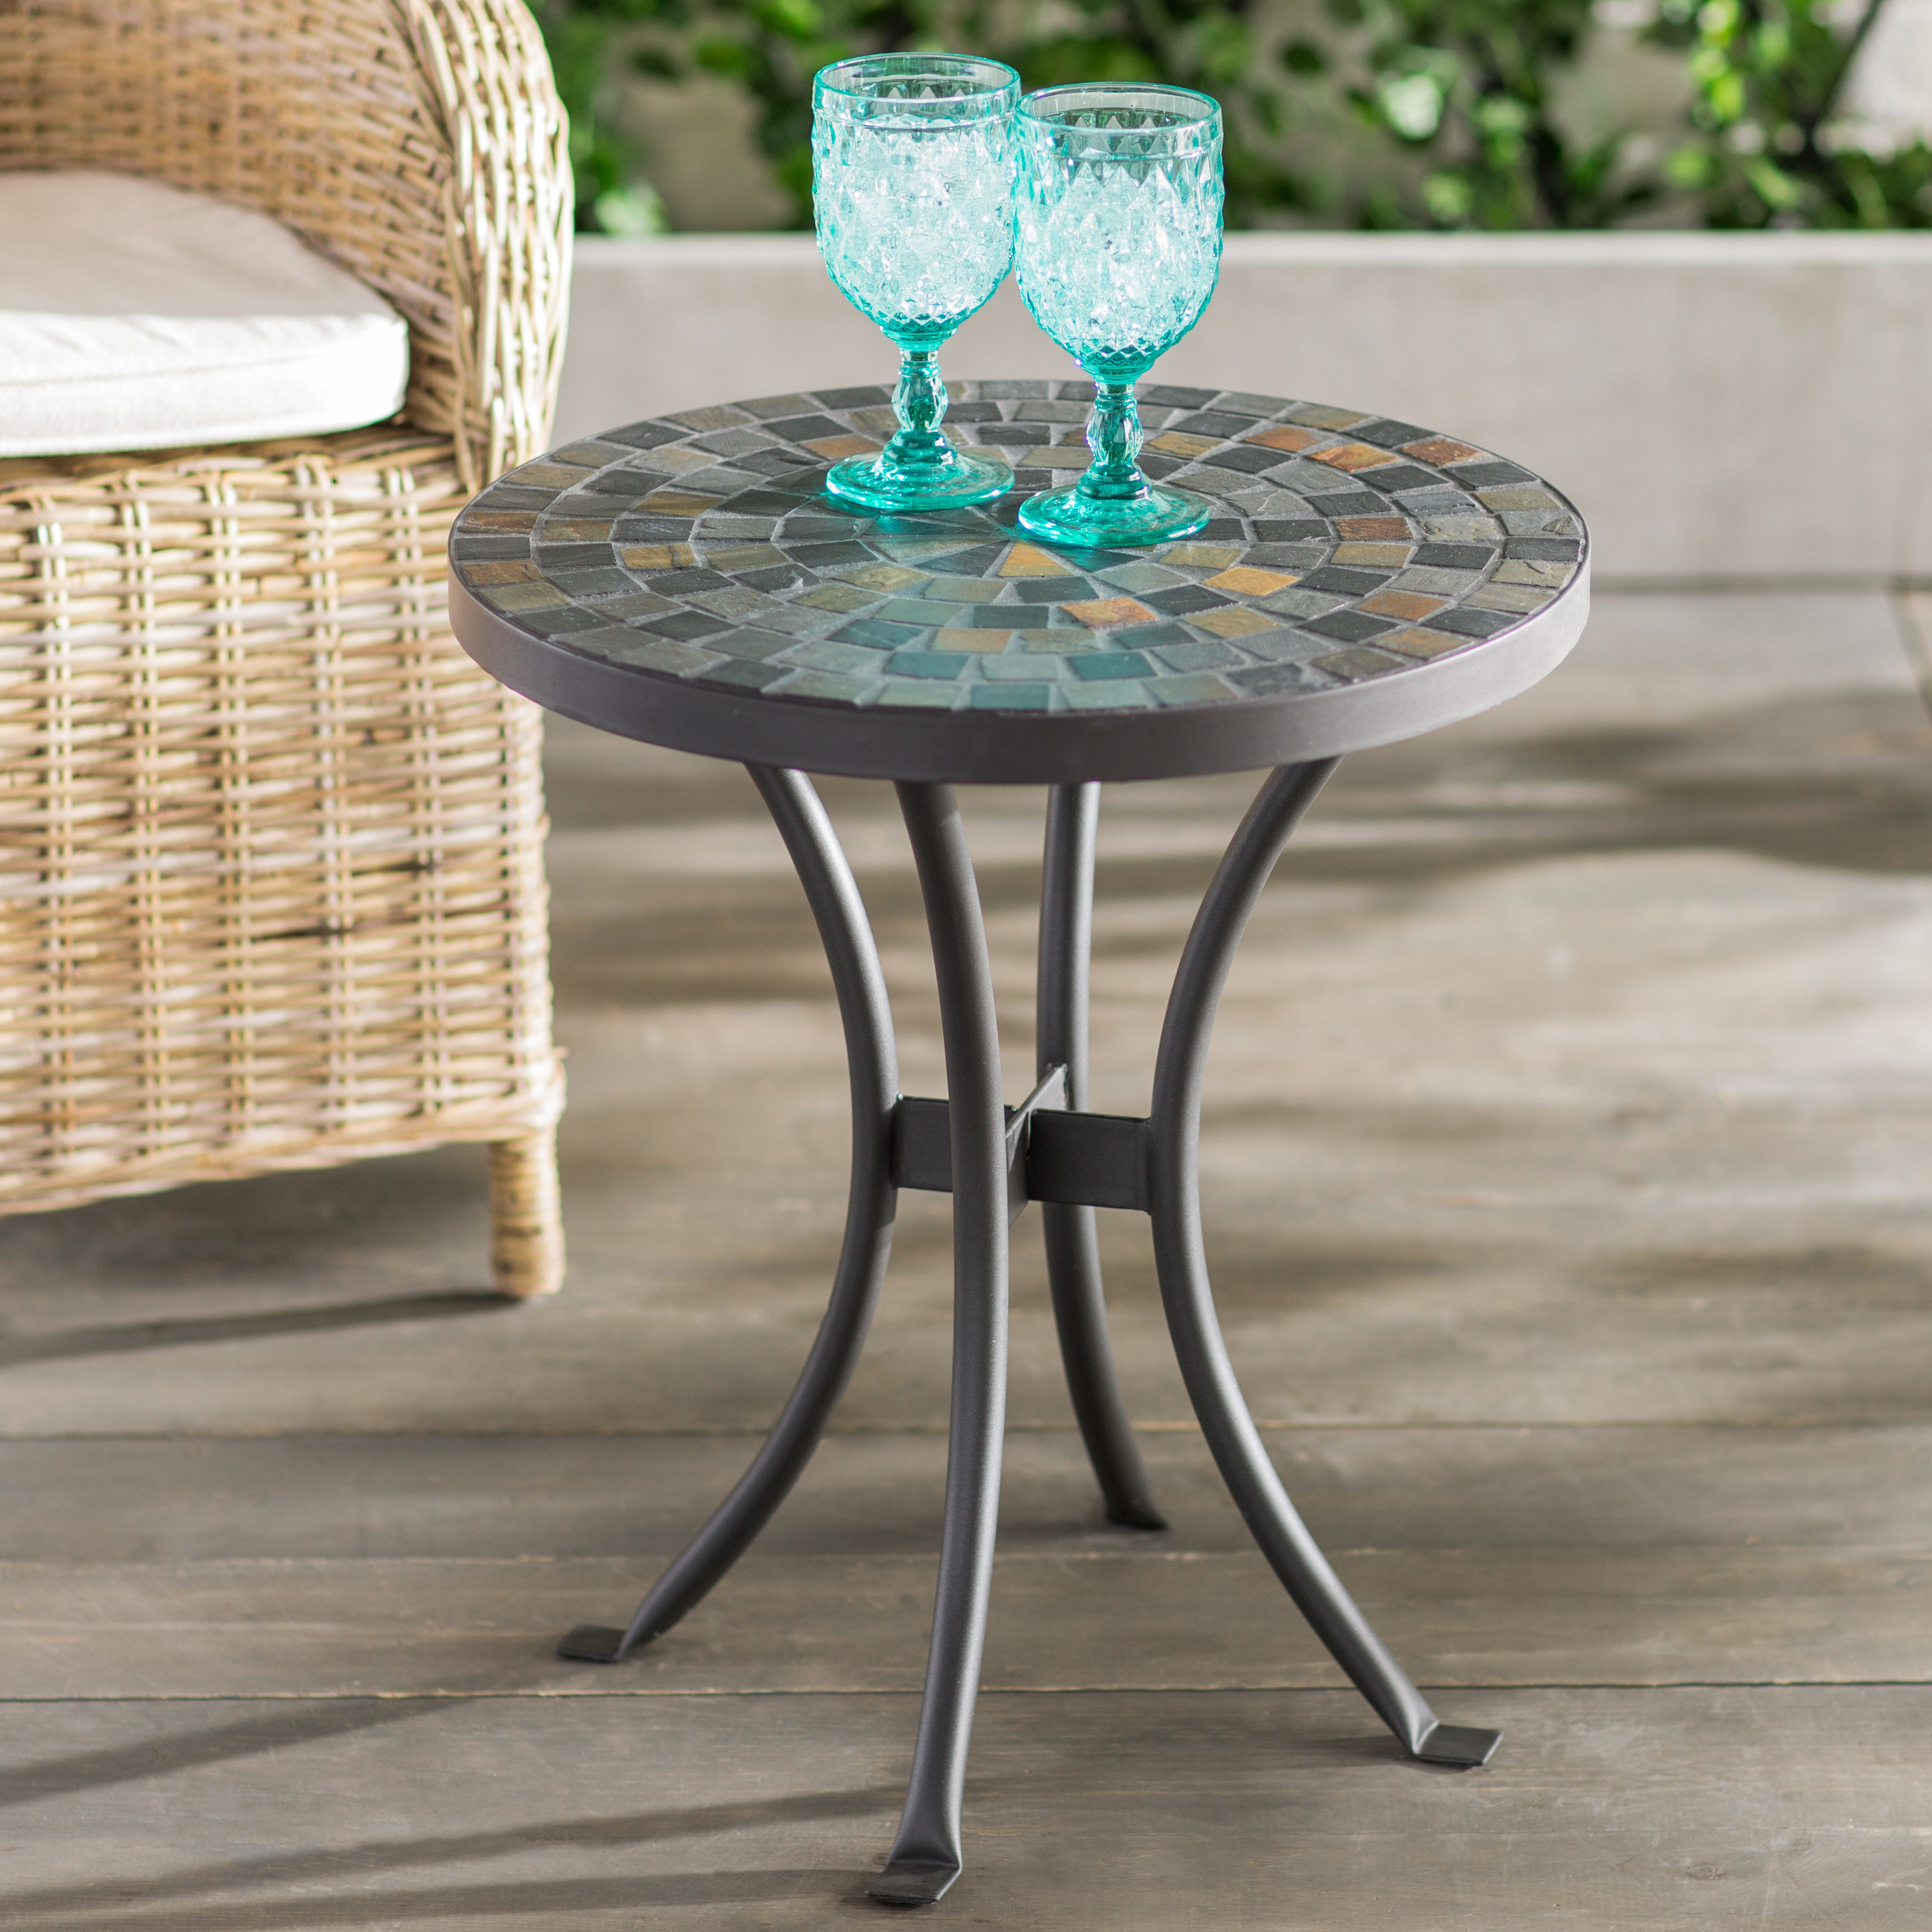 beachcrest home brie mosaic side table reviews outdoor espresso wood end tables plexiglass coffee whole lamp shades small accent lamps for kitchen top furniture simple plans